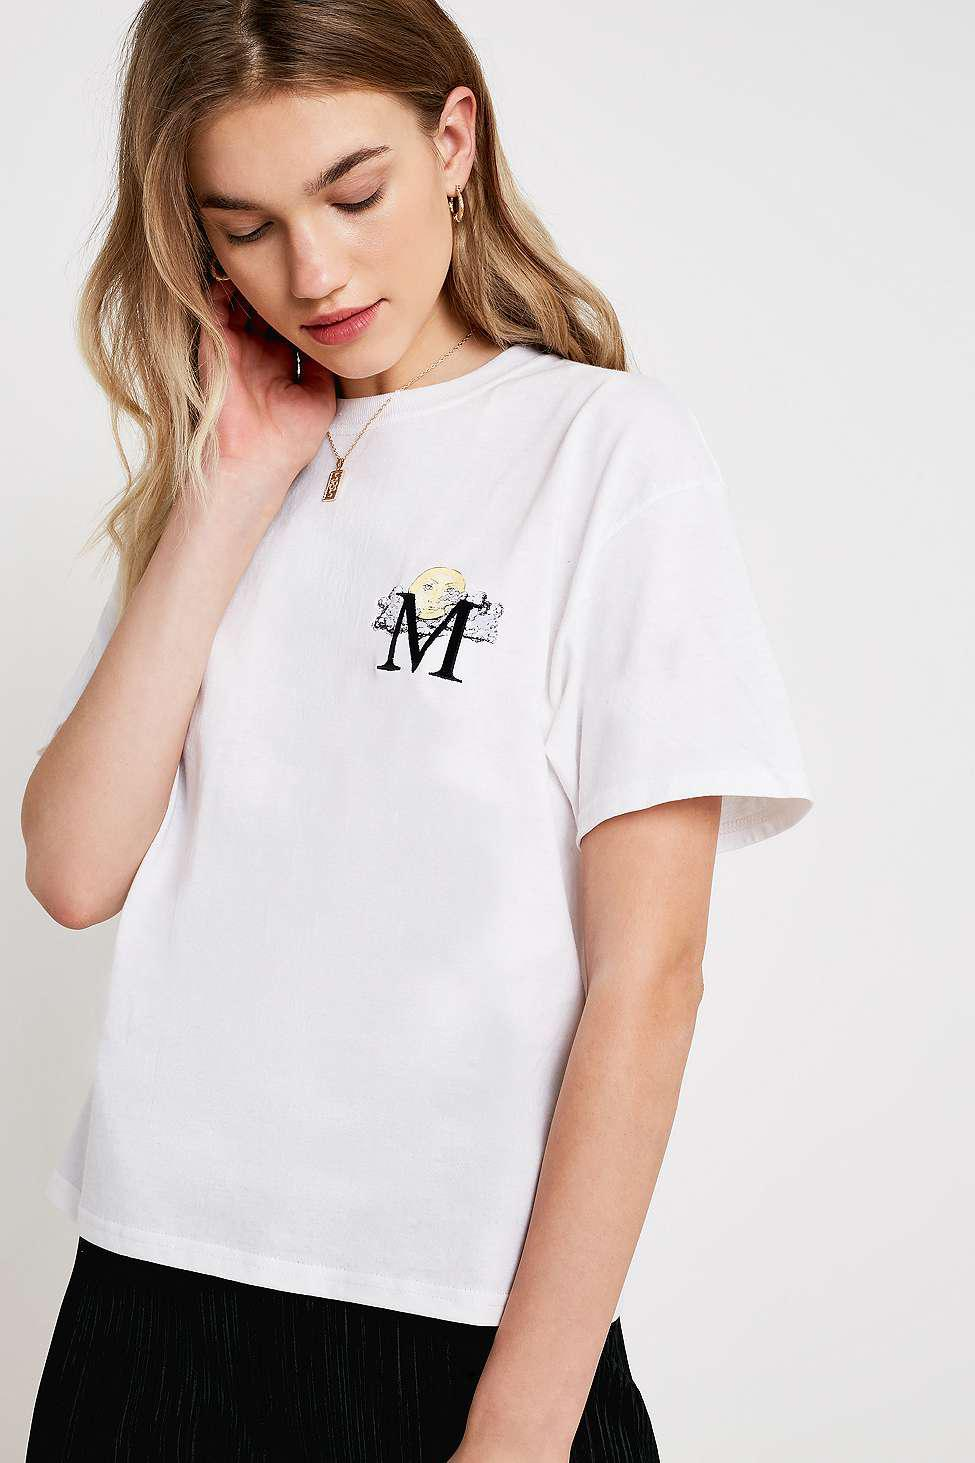 80fe487452d83f Urban Outfitters Uo 'm' Initial Illustration T-shirt - Womens Xs in ...